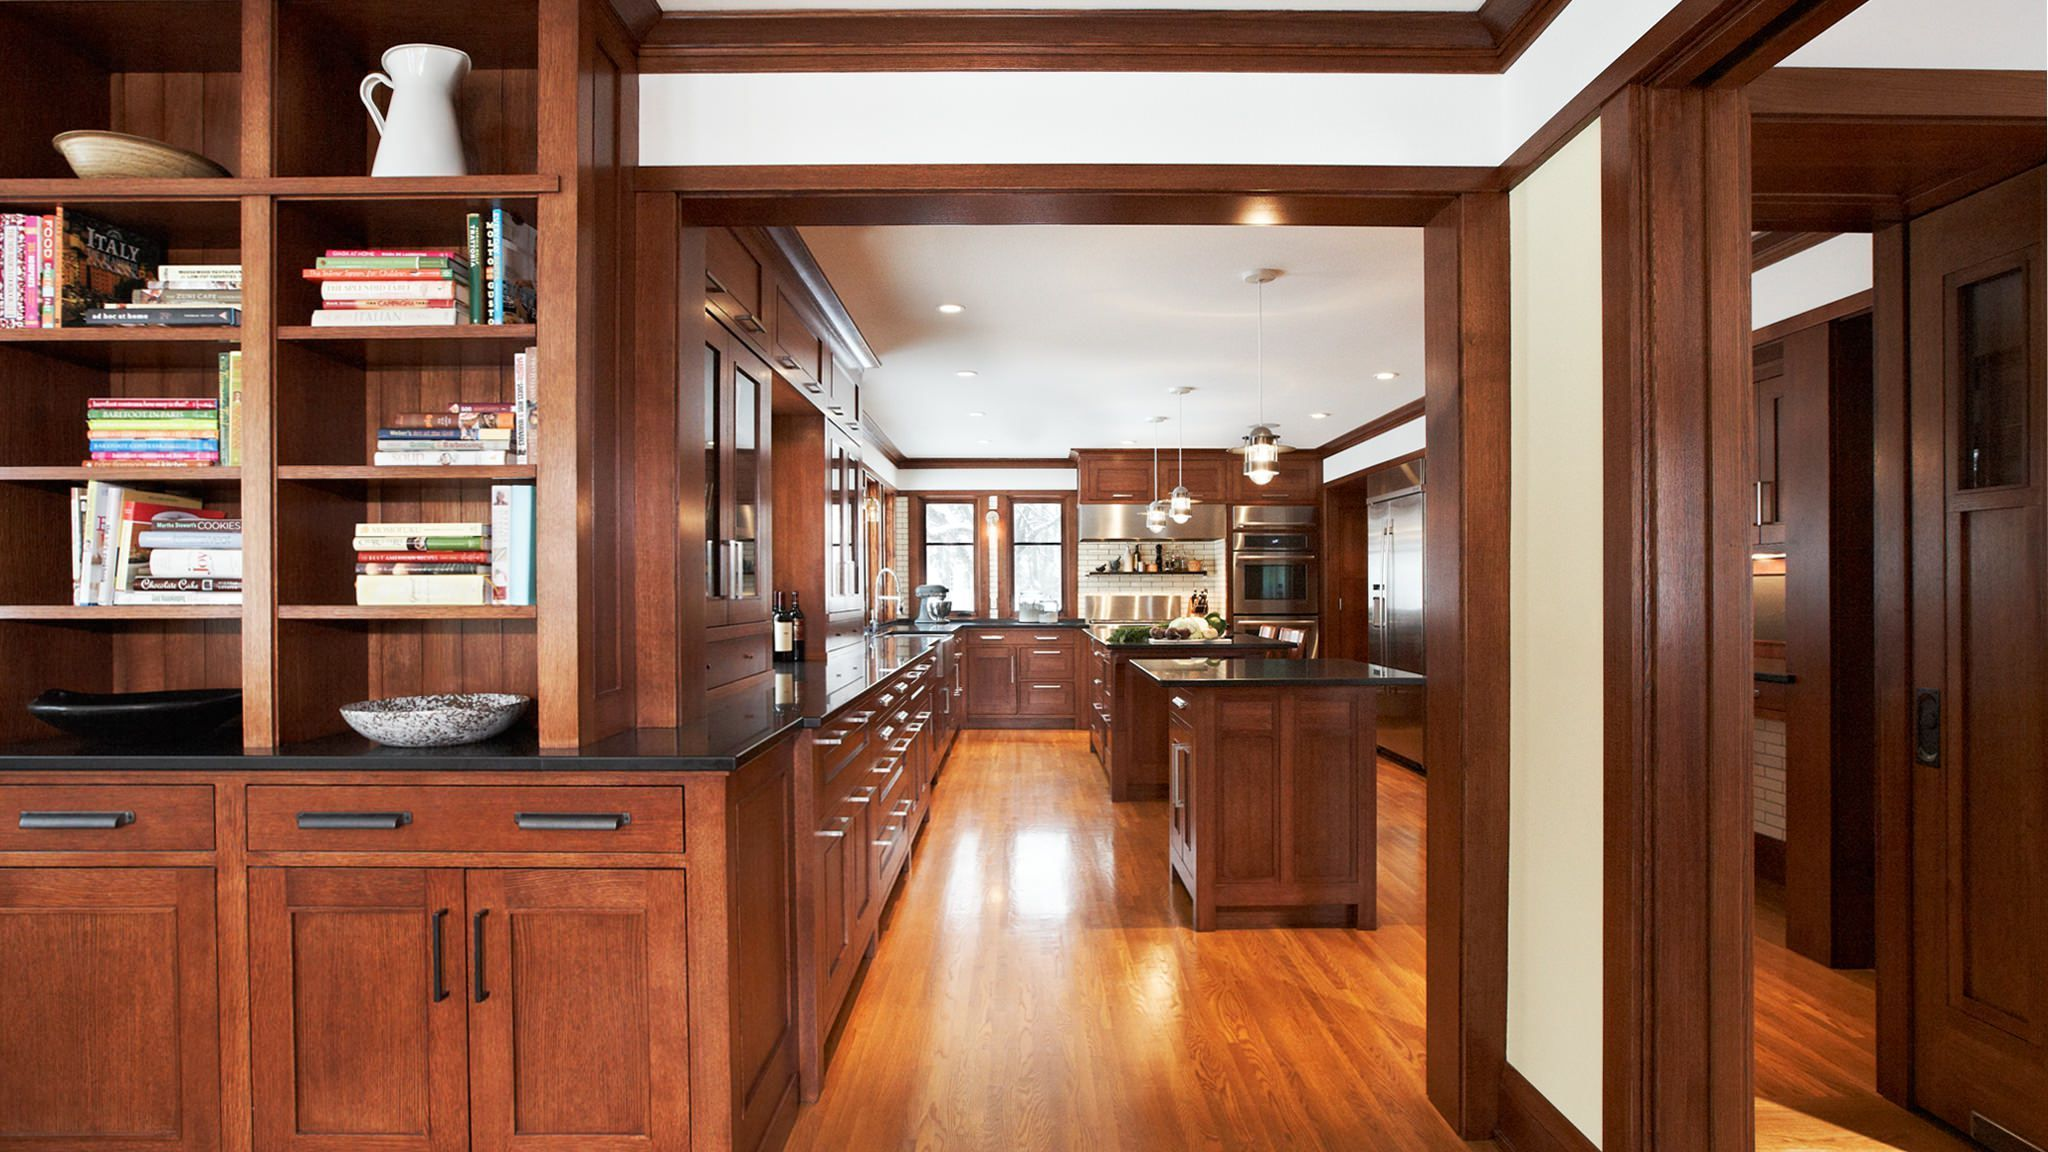 Modern arts and crafts kitchen design | Arts and crafts ...